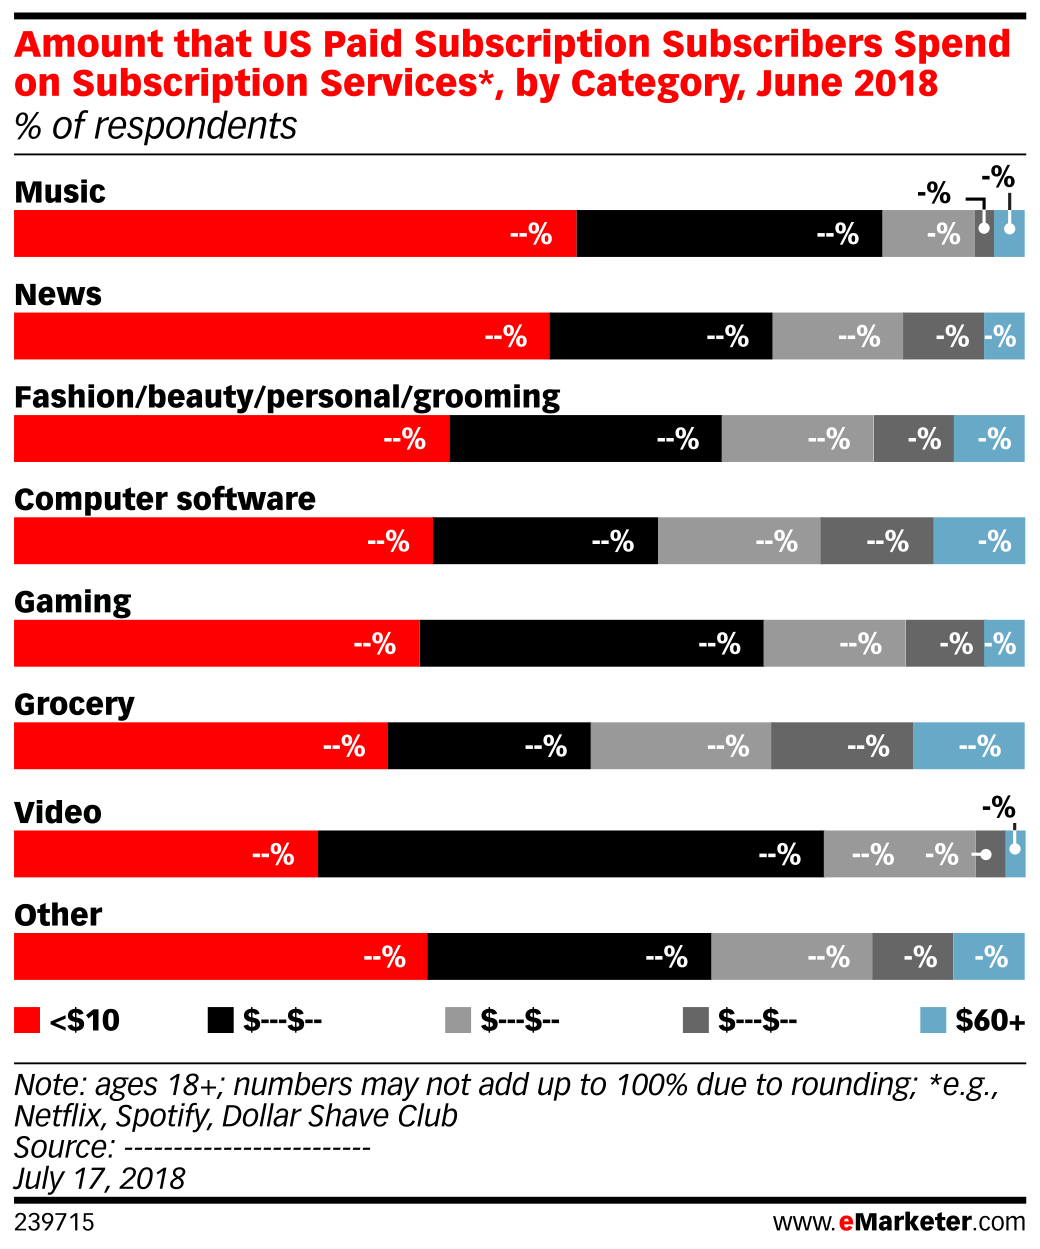 Amount that US Paid Subscription Subscribers Spend on Subscription Services*, by Category, June 2018 (% of respondents)